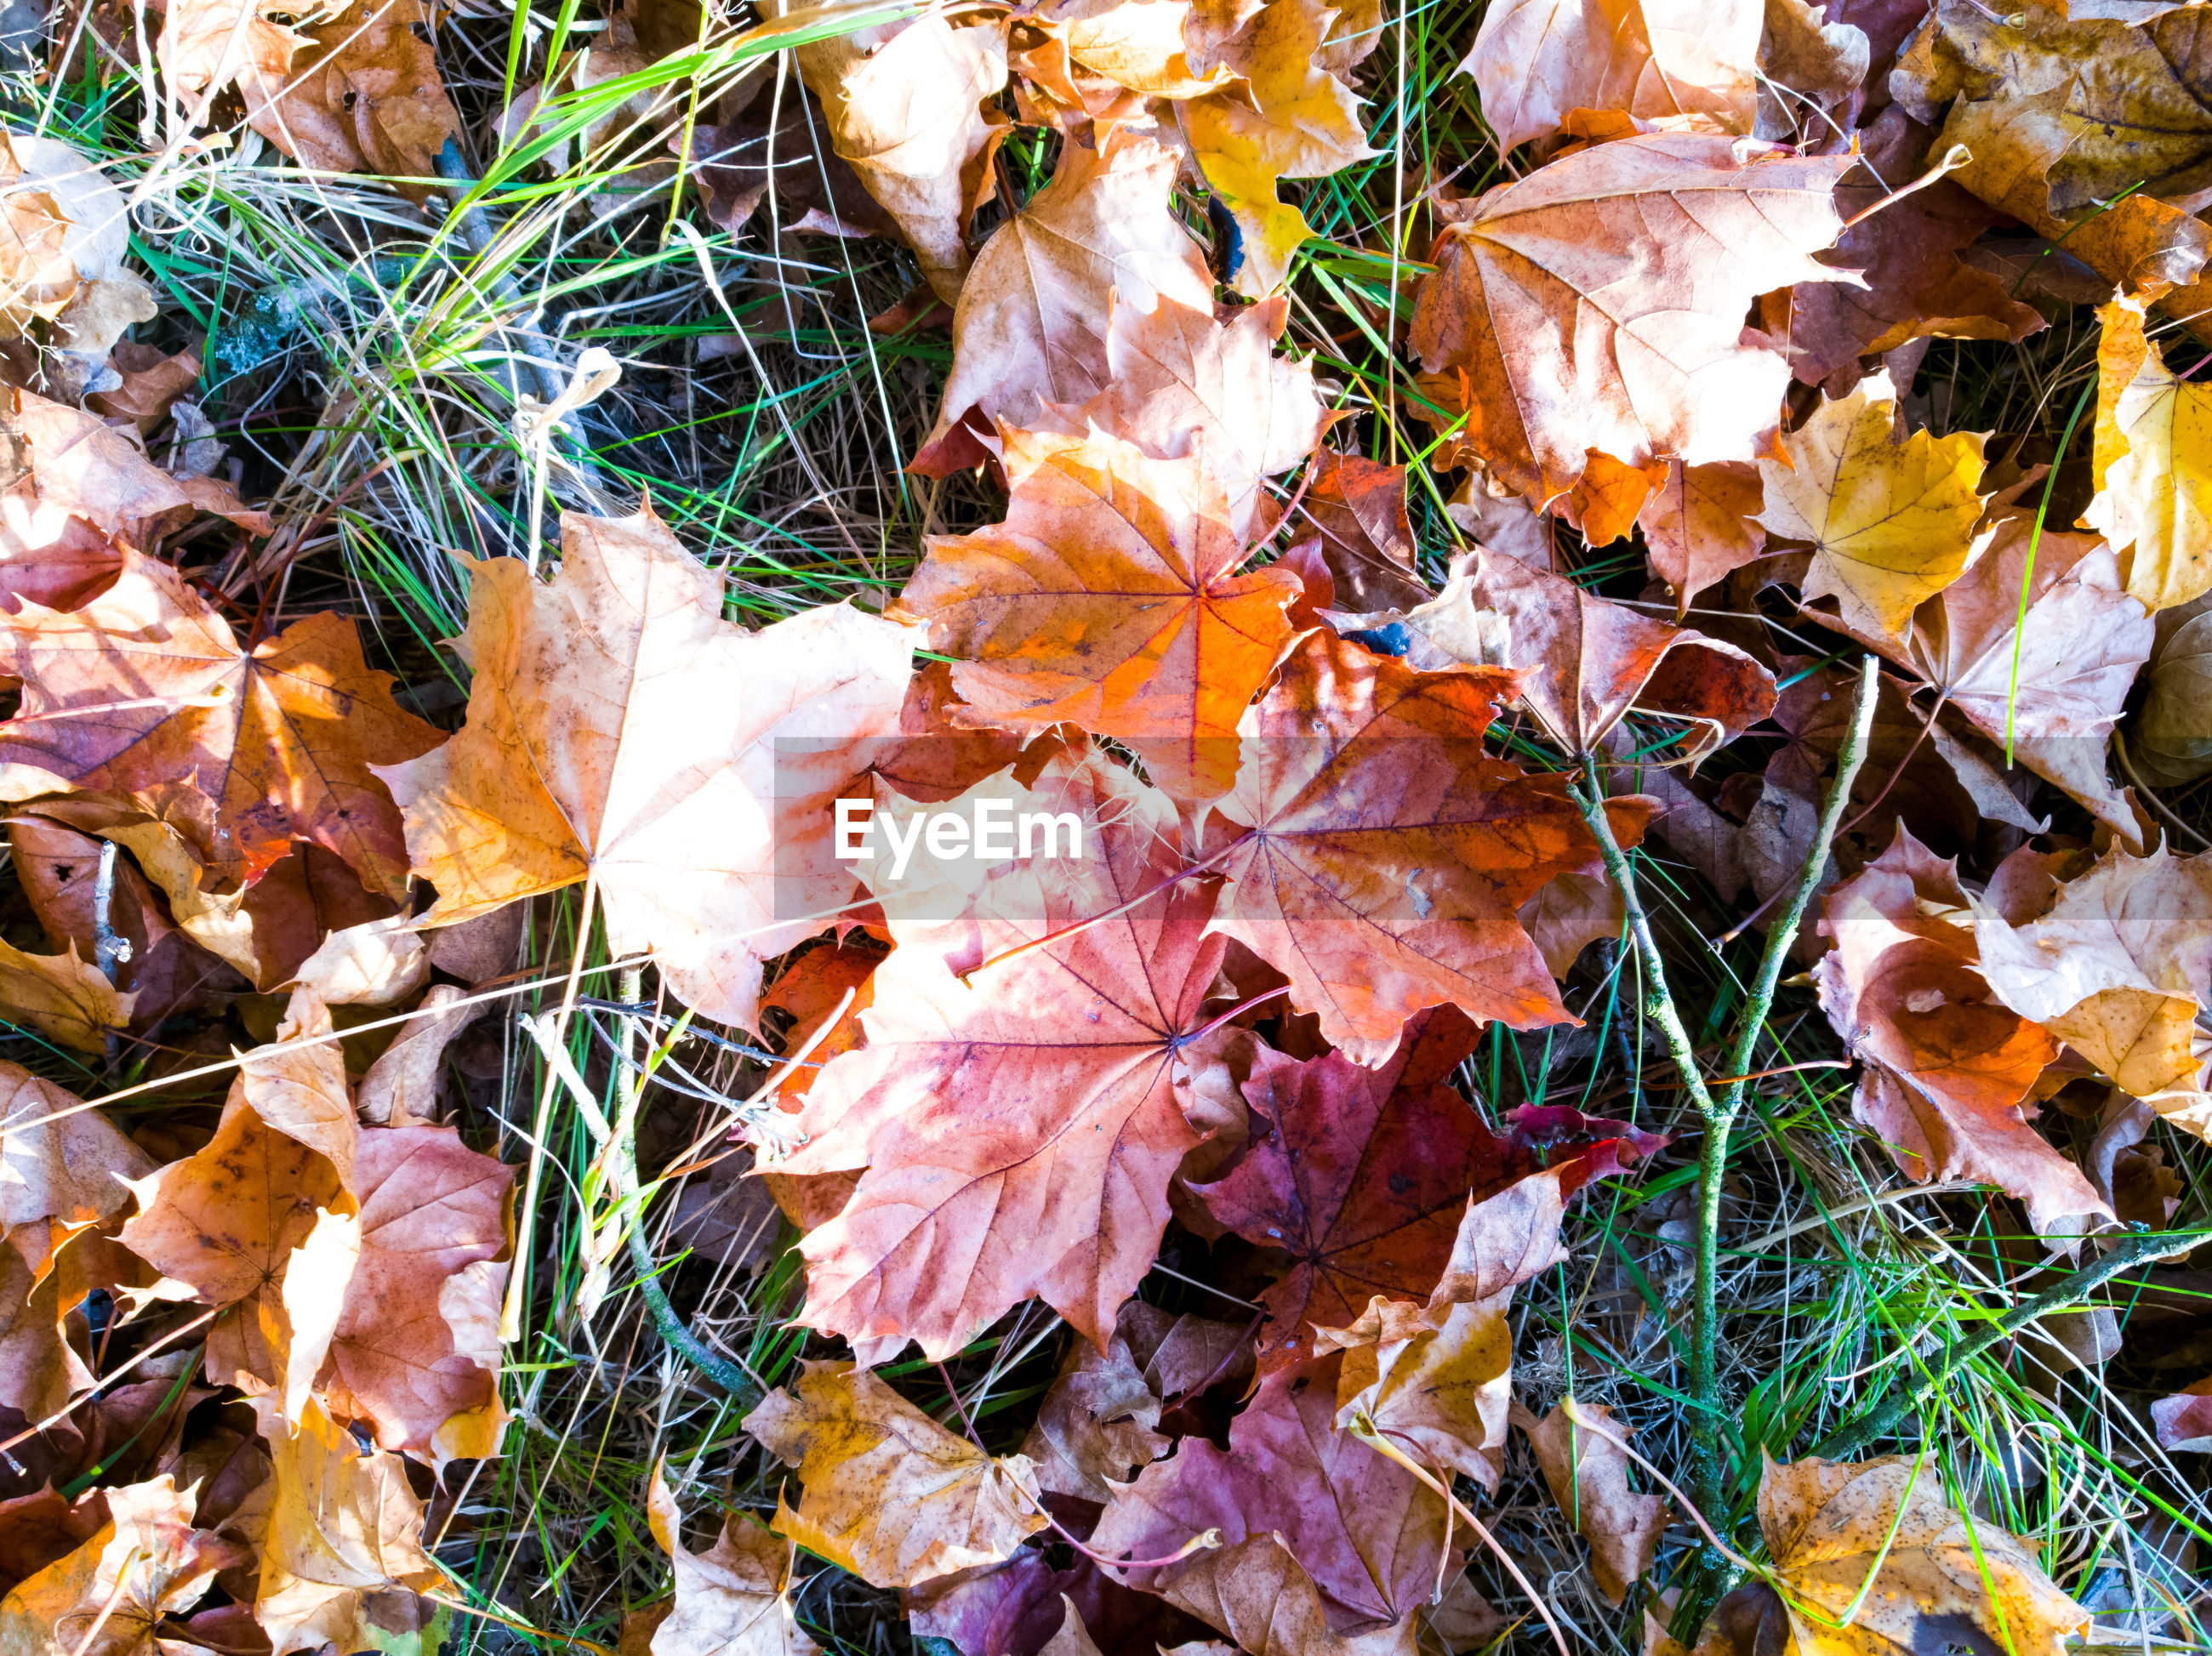 CLOSE-UP OF MAPLE LEAVES FALLEN ON FIELD